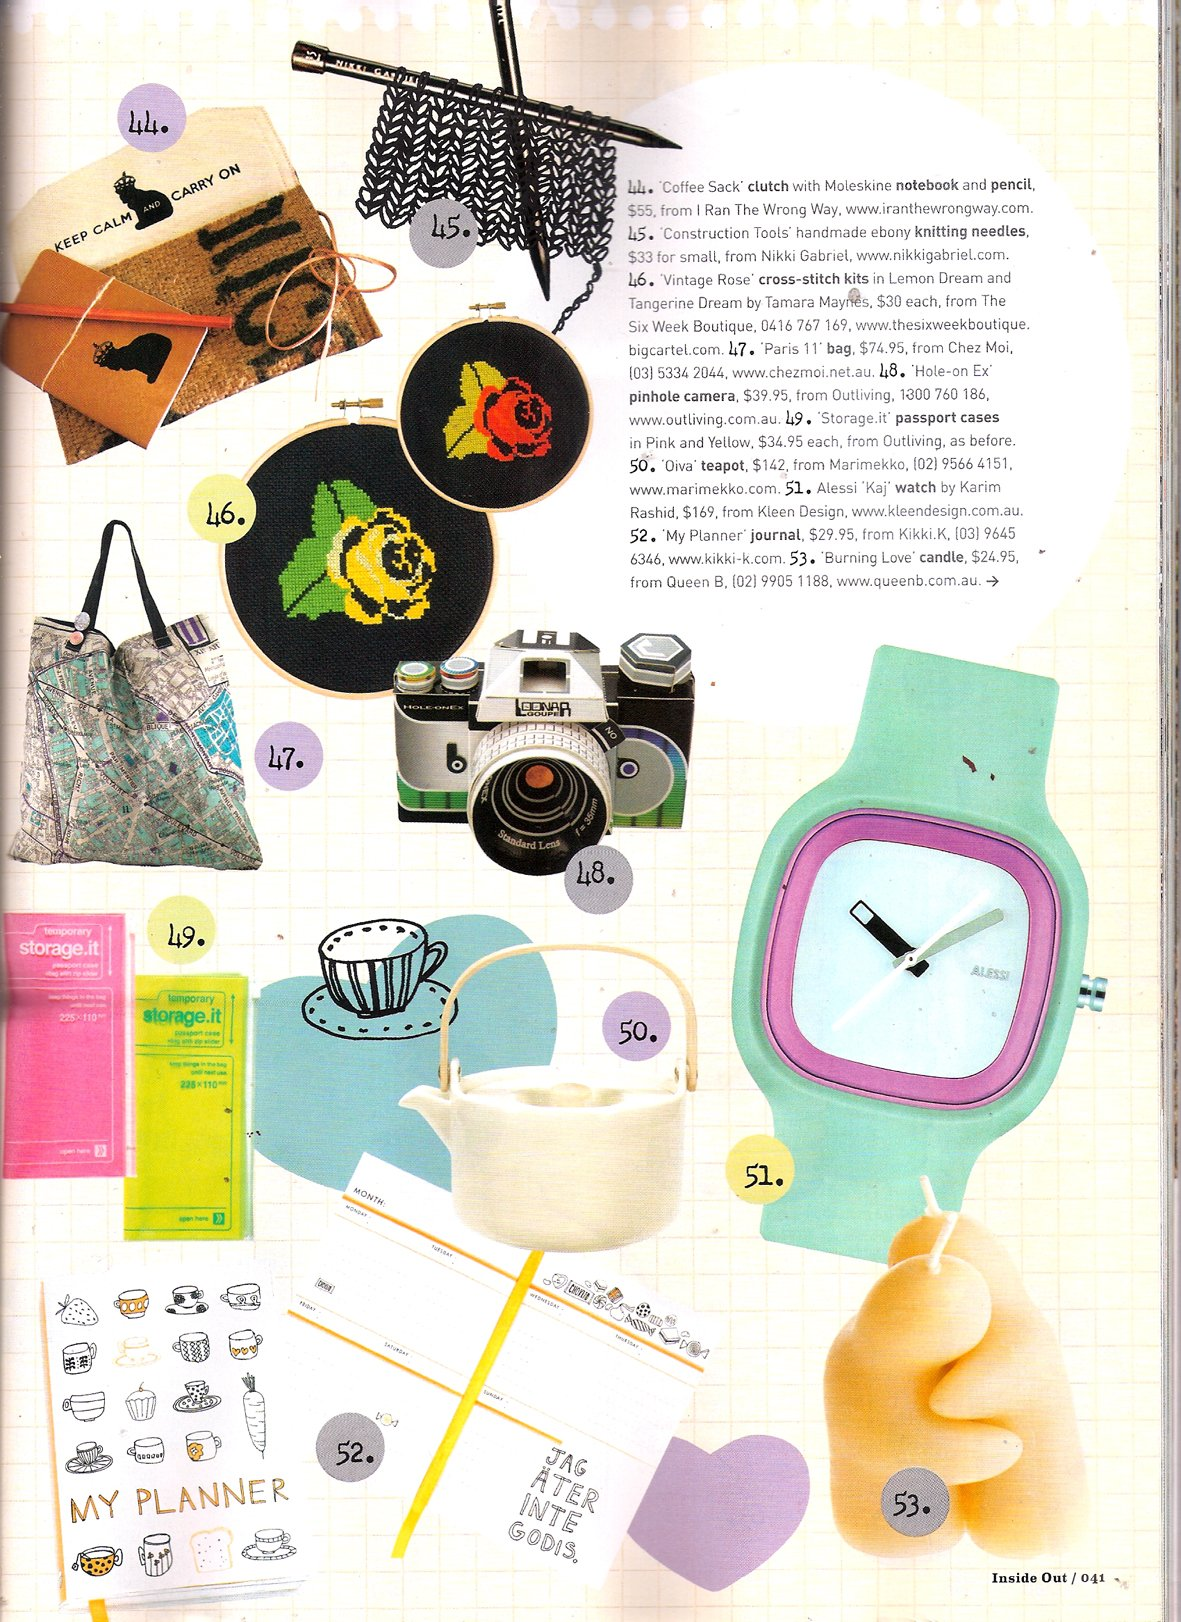 Queen B candles in Dec issue of Inside Out